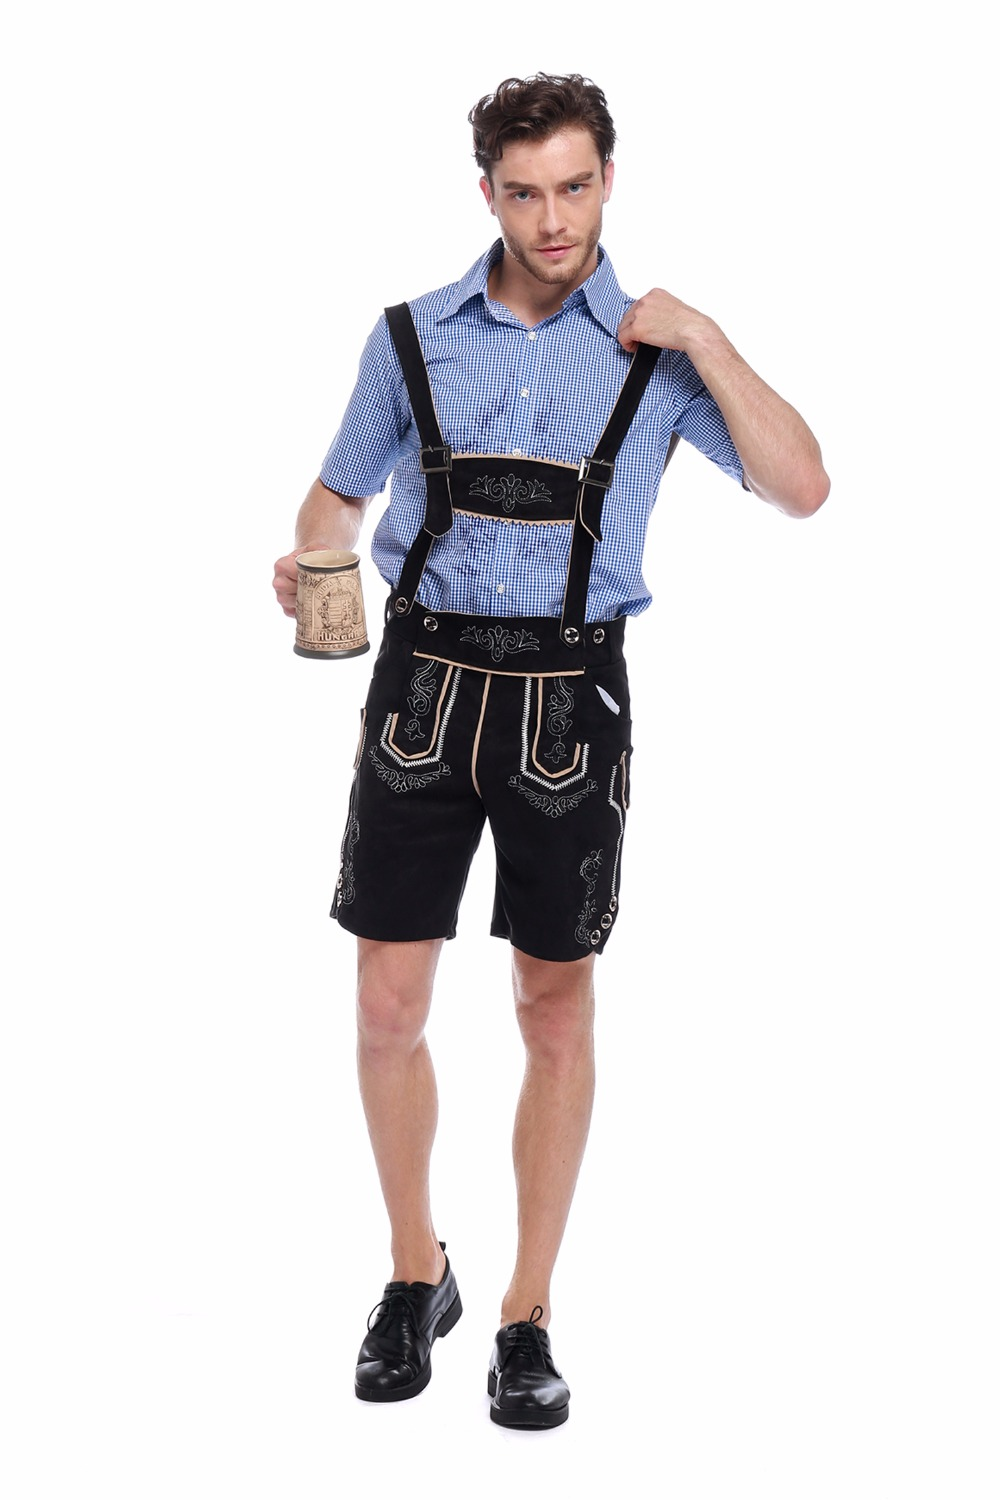 Adult Male Germany Beer Maid Oktoberfest Costumes Bavarian Festival Themed Party Halloween Fancy Dress Up Outfit Suit For Man XL